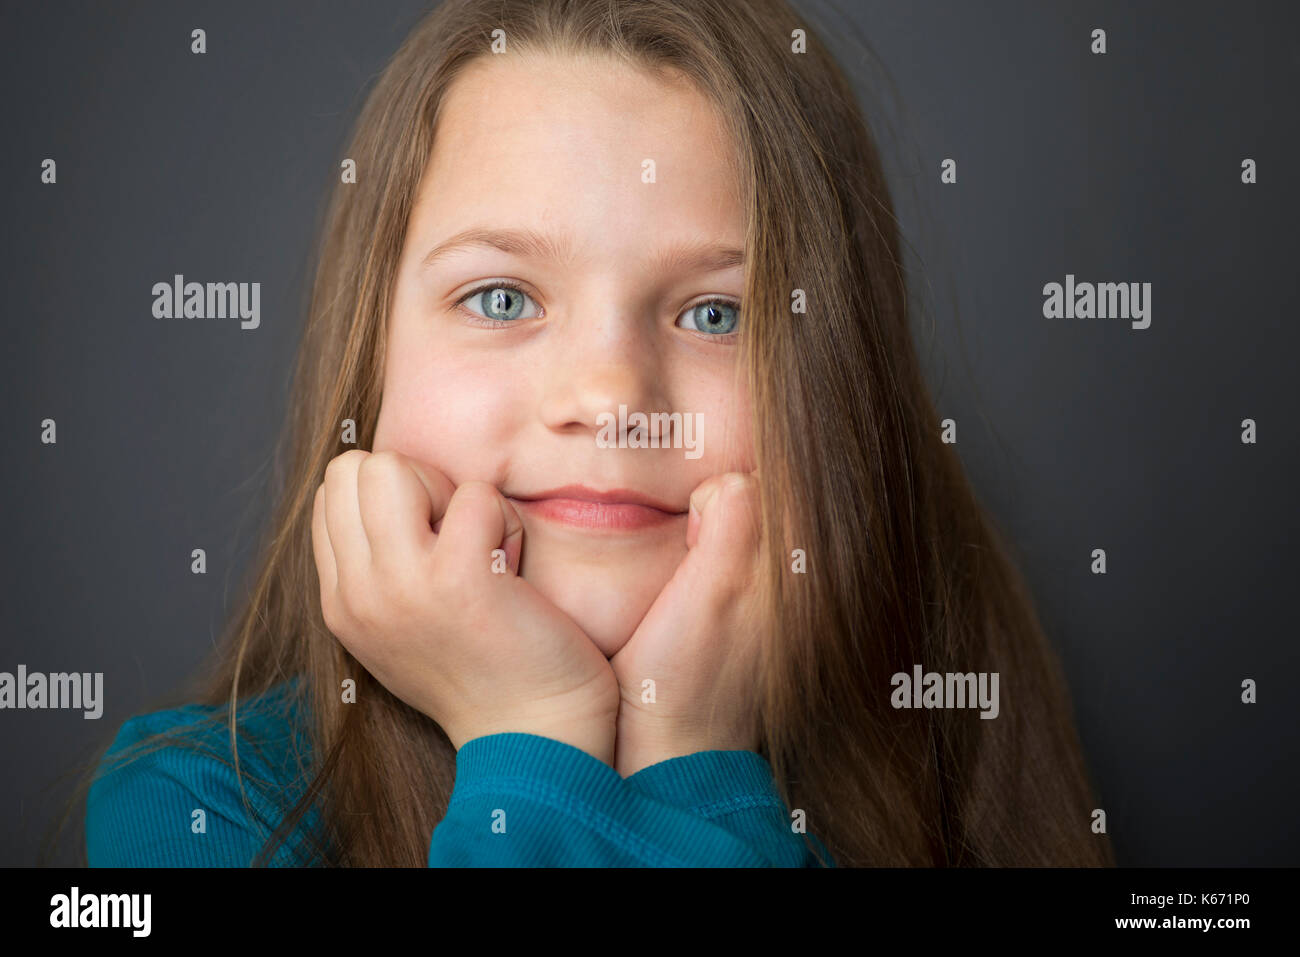 girl with wide open eyes keeping head on hands - Stock Image